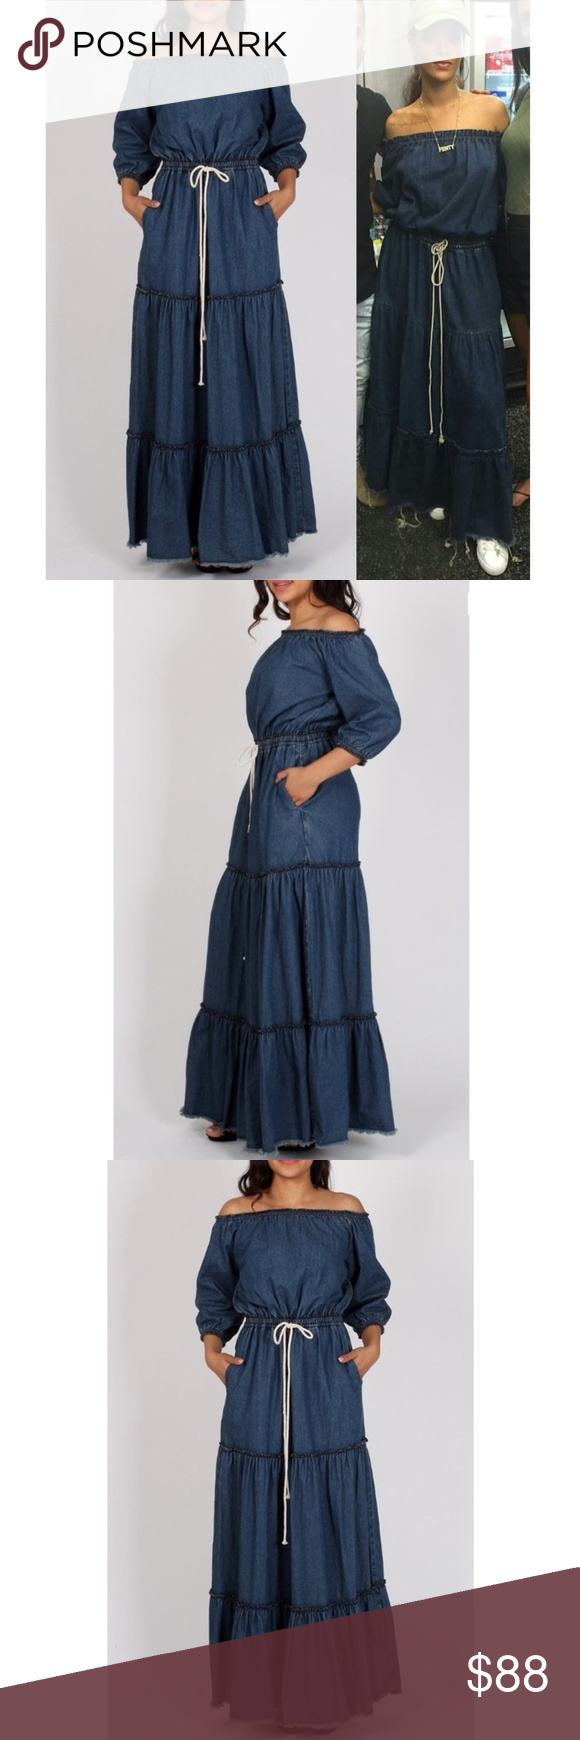 2602ebb7e859 Denim Off Shoulder Tiered Ruffle Jean Maxi Dress Celebrity designer and  Rihanna inspired Dark Denim Off Shoulder Maxi Dress with Tiered Ruffled  Skirt. 3 4 ...